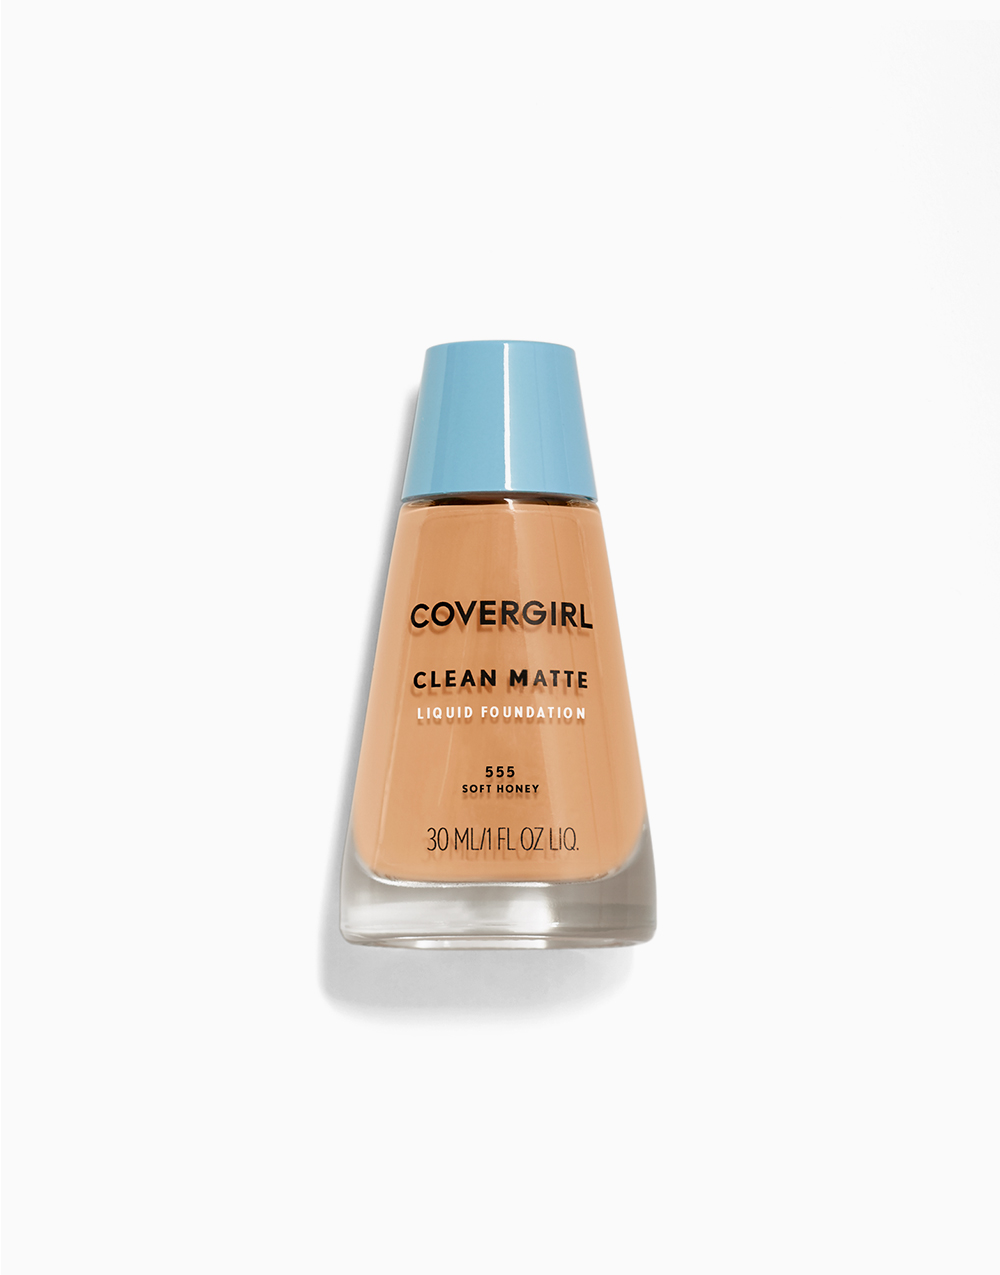 Clean Matte Liquid Foundation by CoverGirl | Soft Honey